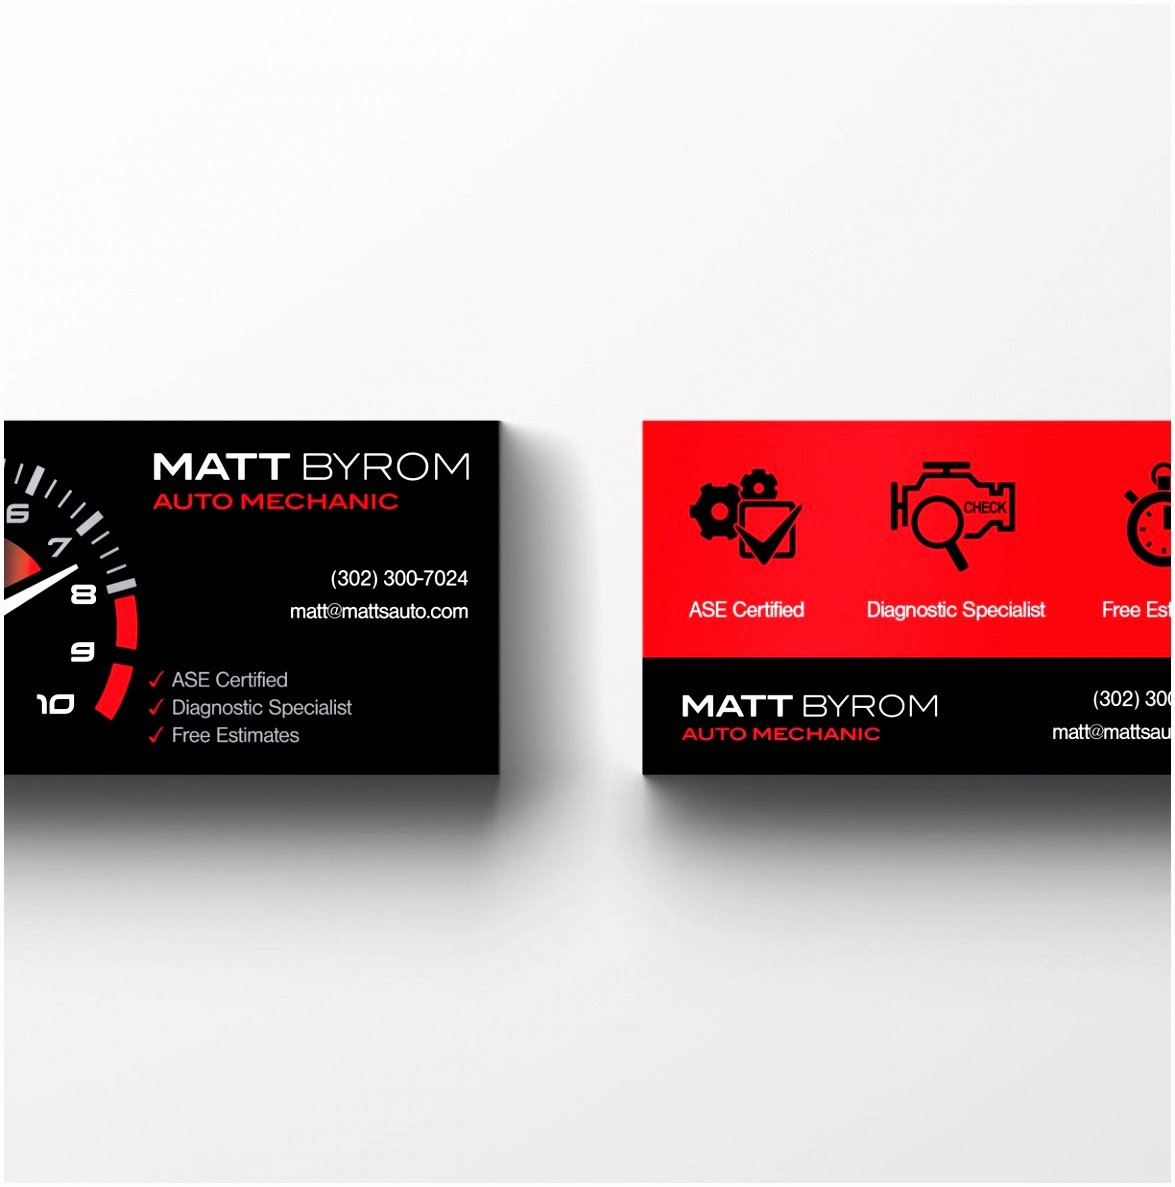 Mechanic Business Cards Templates Free Beautiful 12 Mechanic Business Cards Templates Free Vujkp